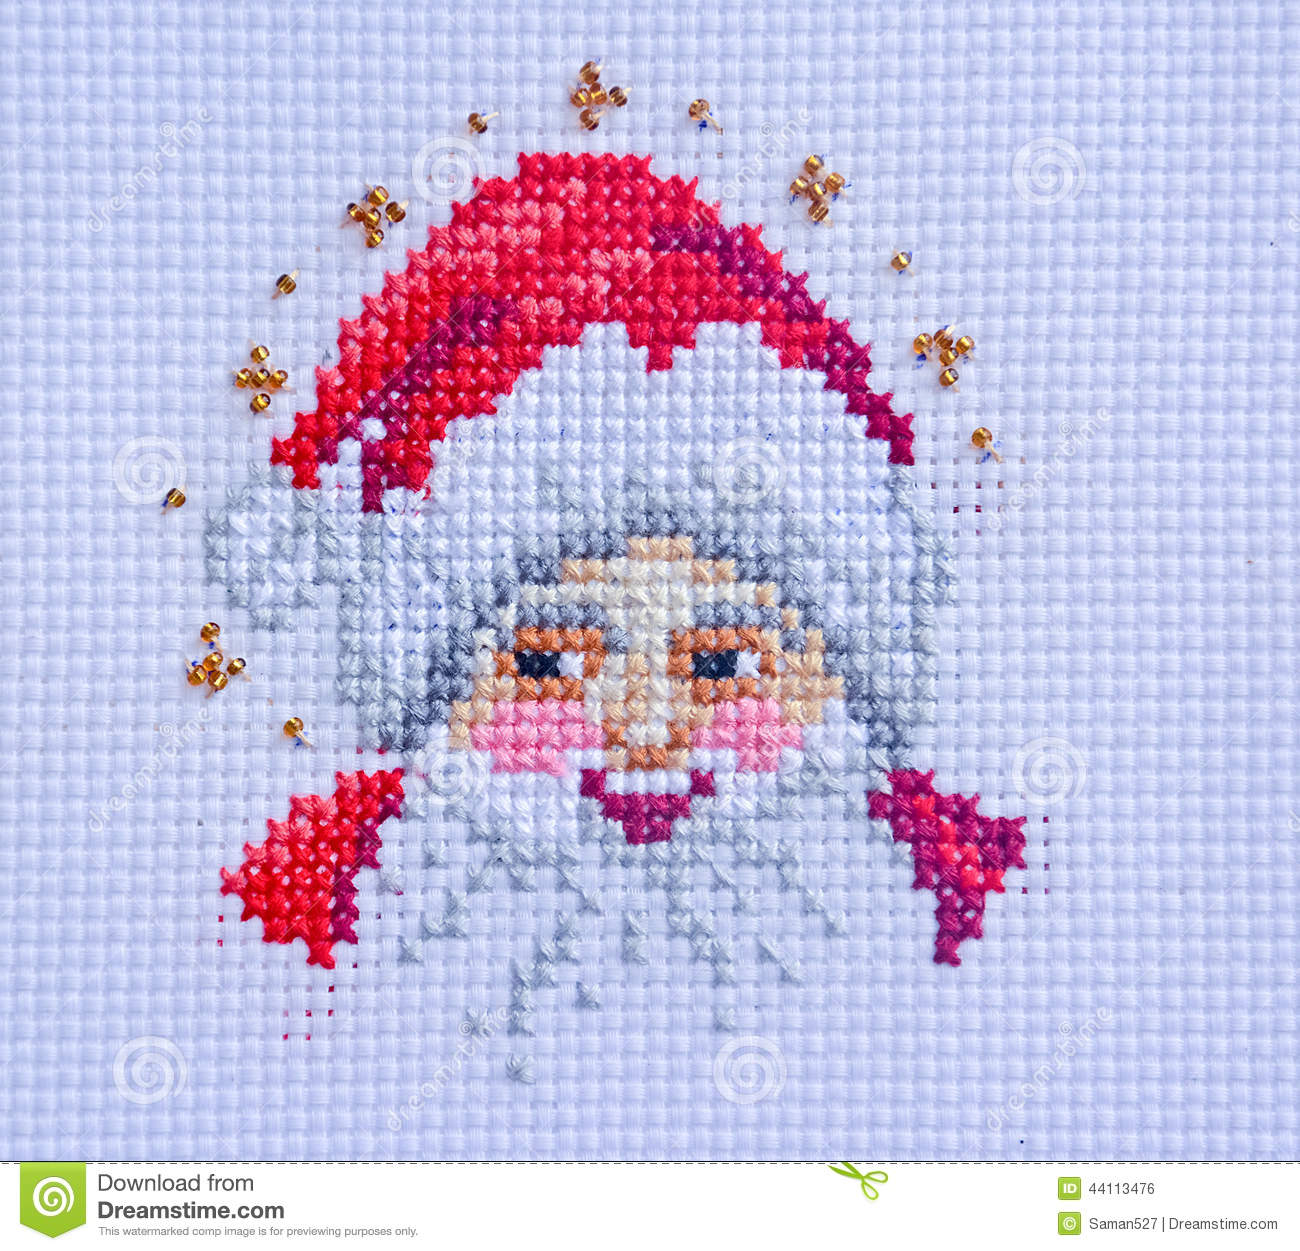 Embroidery And Cross-Stitch Design Stock Photo - Image 44113476